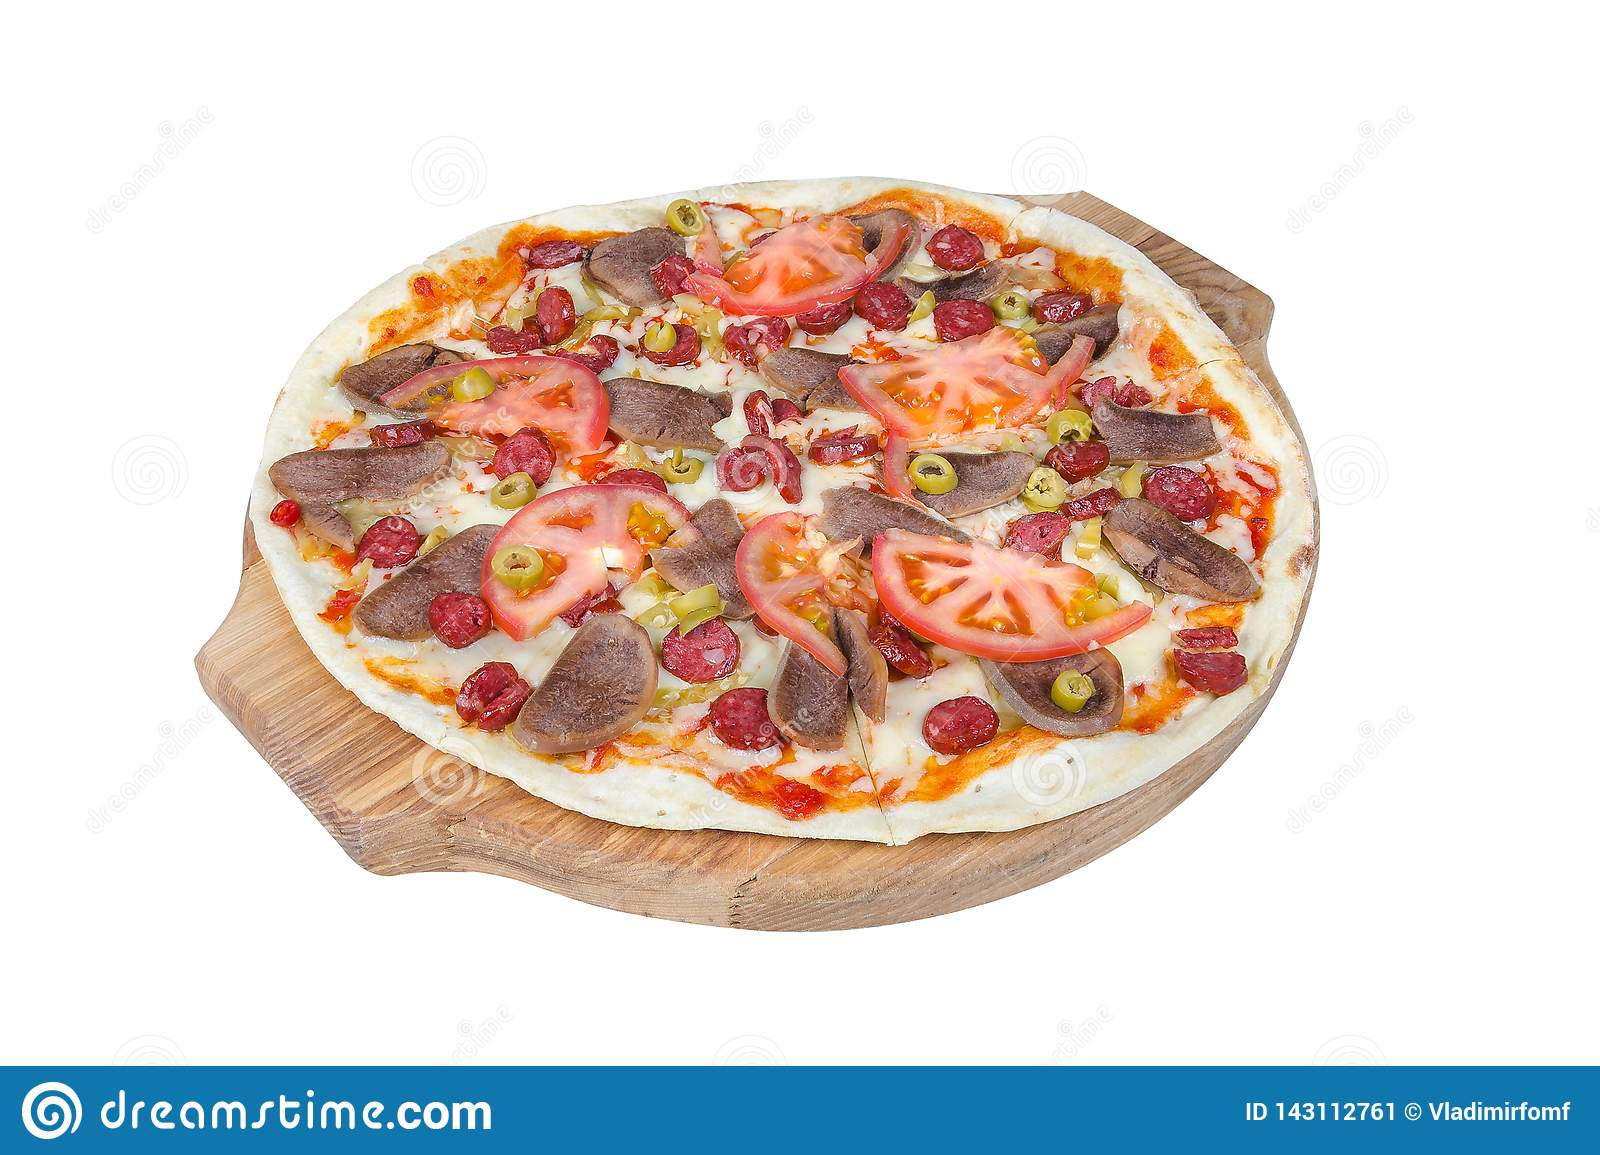 Sicilian pizza on a round cutting board isolated on white background